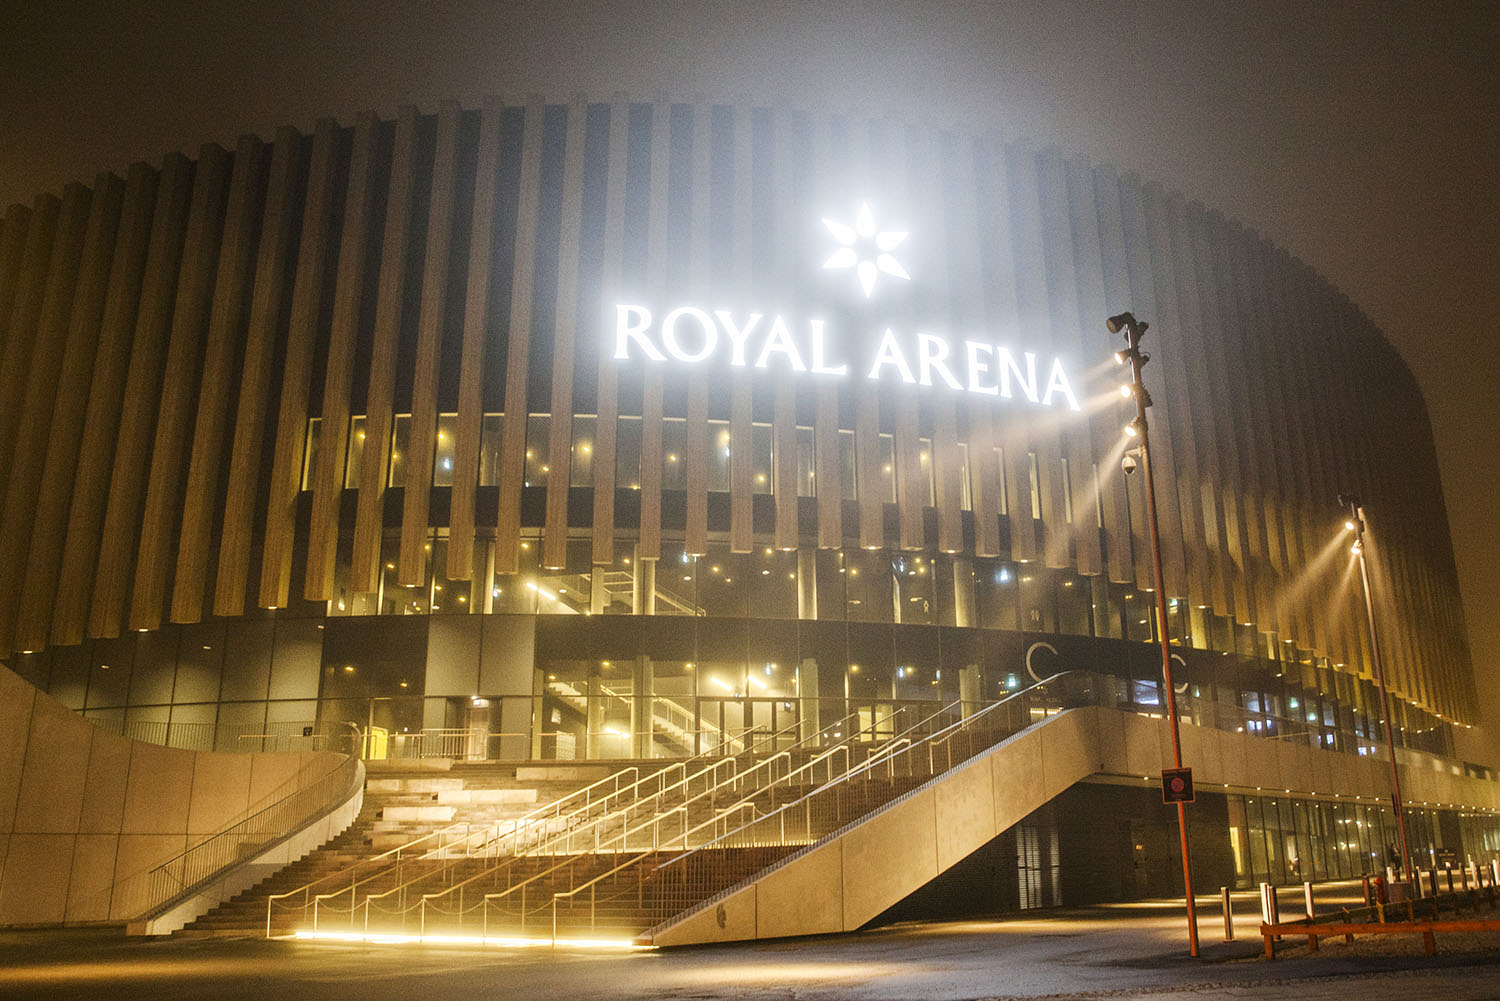 RoyalArena_HelenaLundquist_1_small